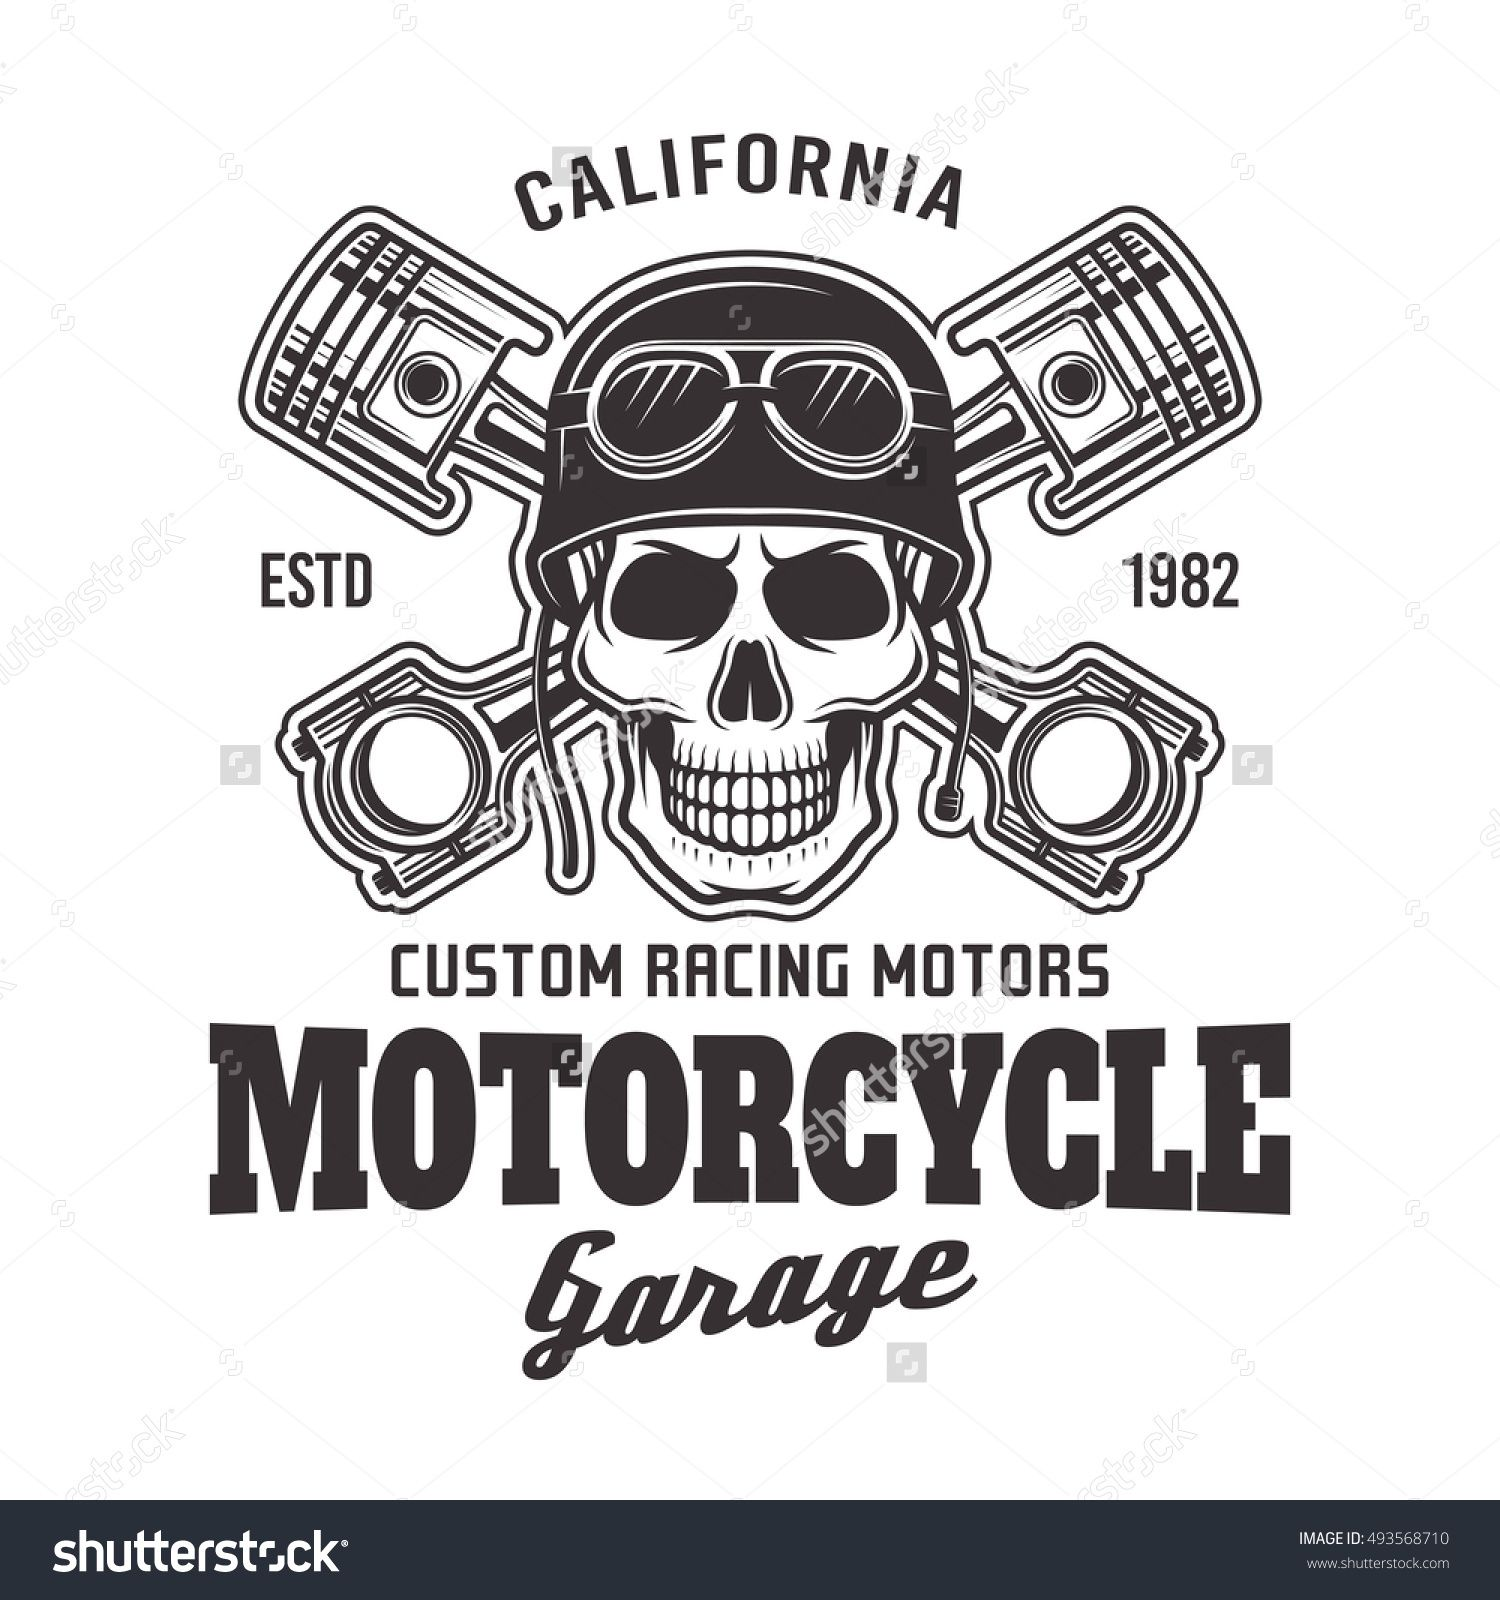 motorcycle garage vector biker emblem label or logo with